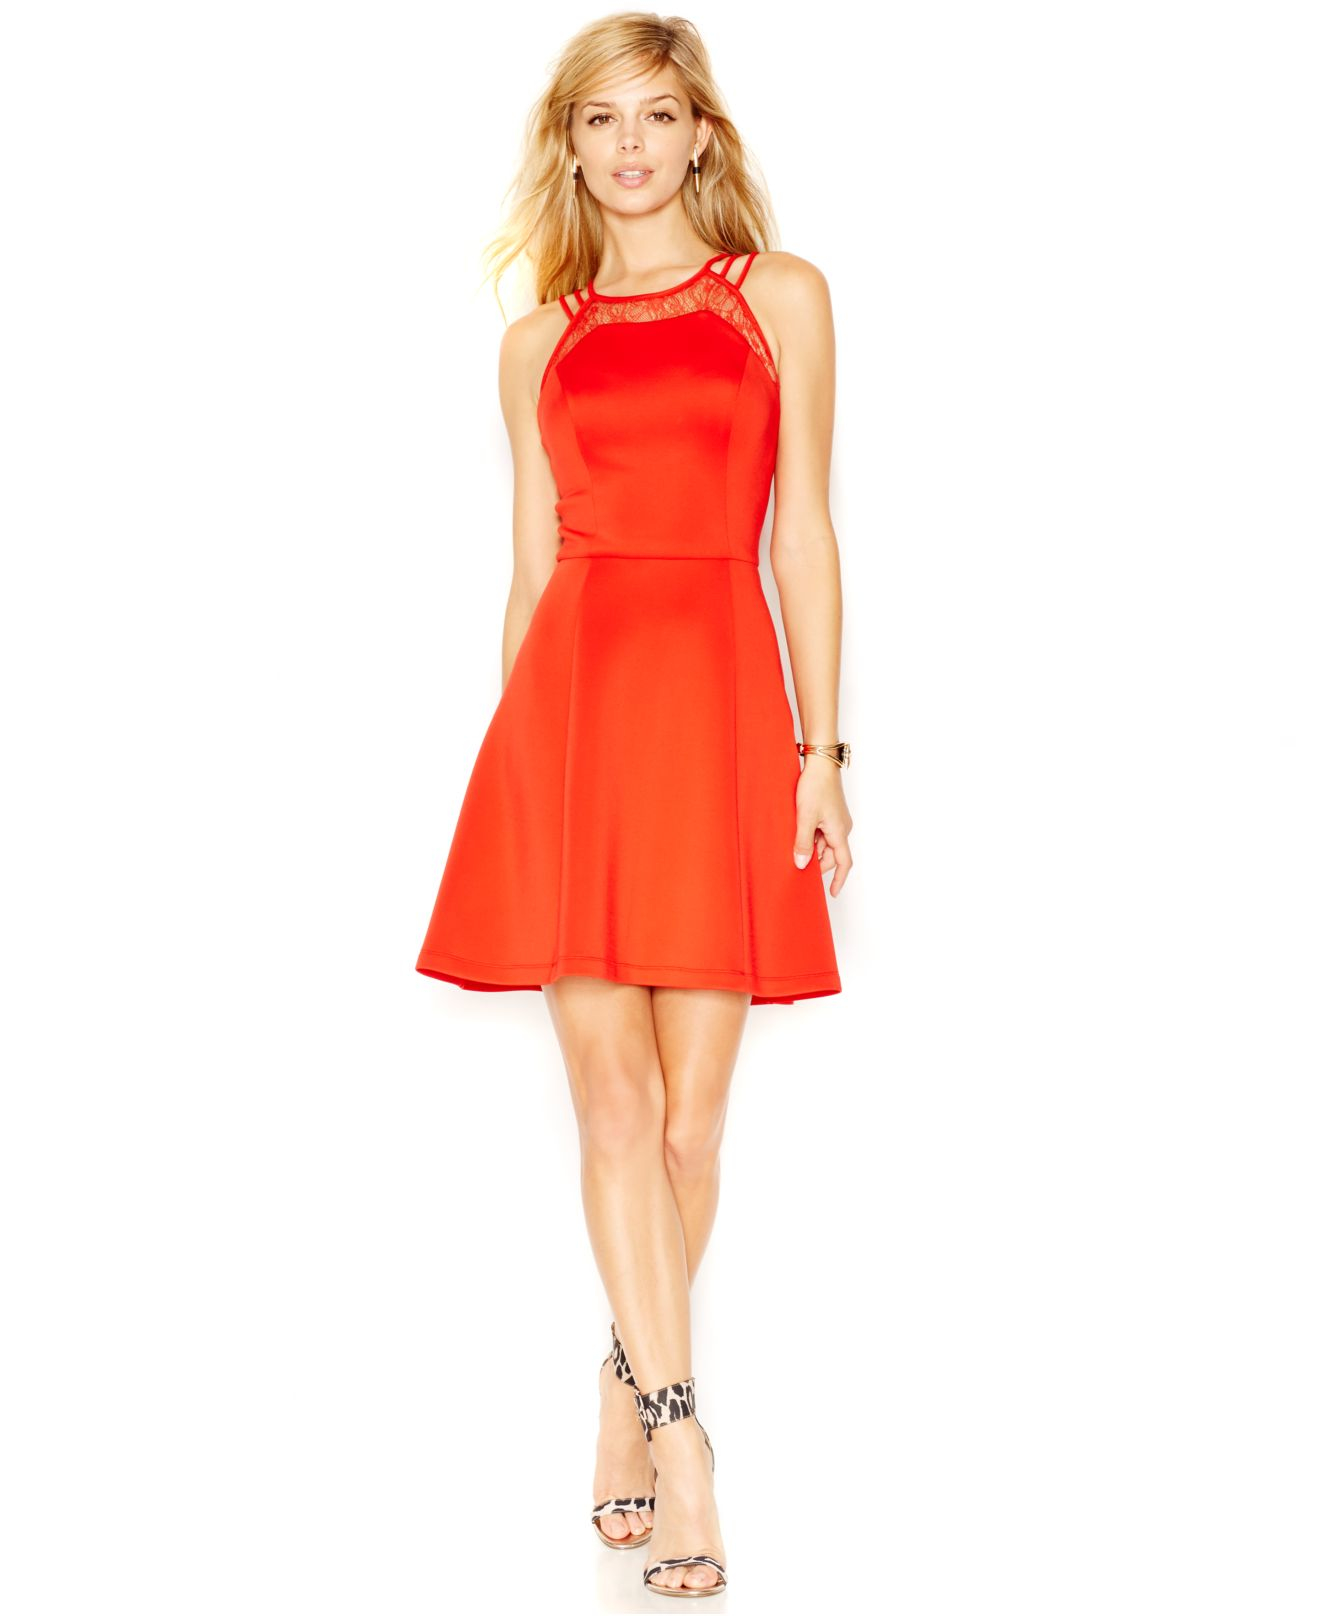 Lyst - Guess Fit & Flare Lace-inset Dress in Red